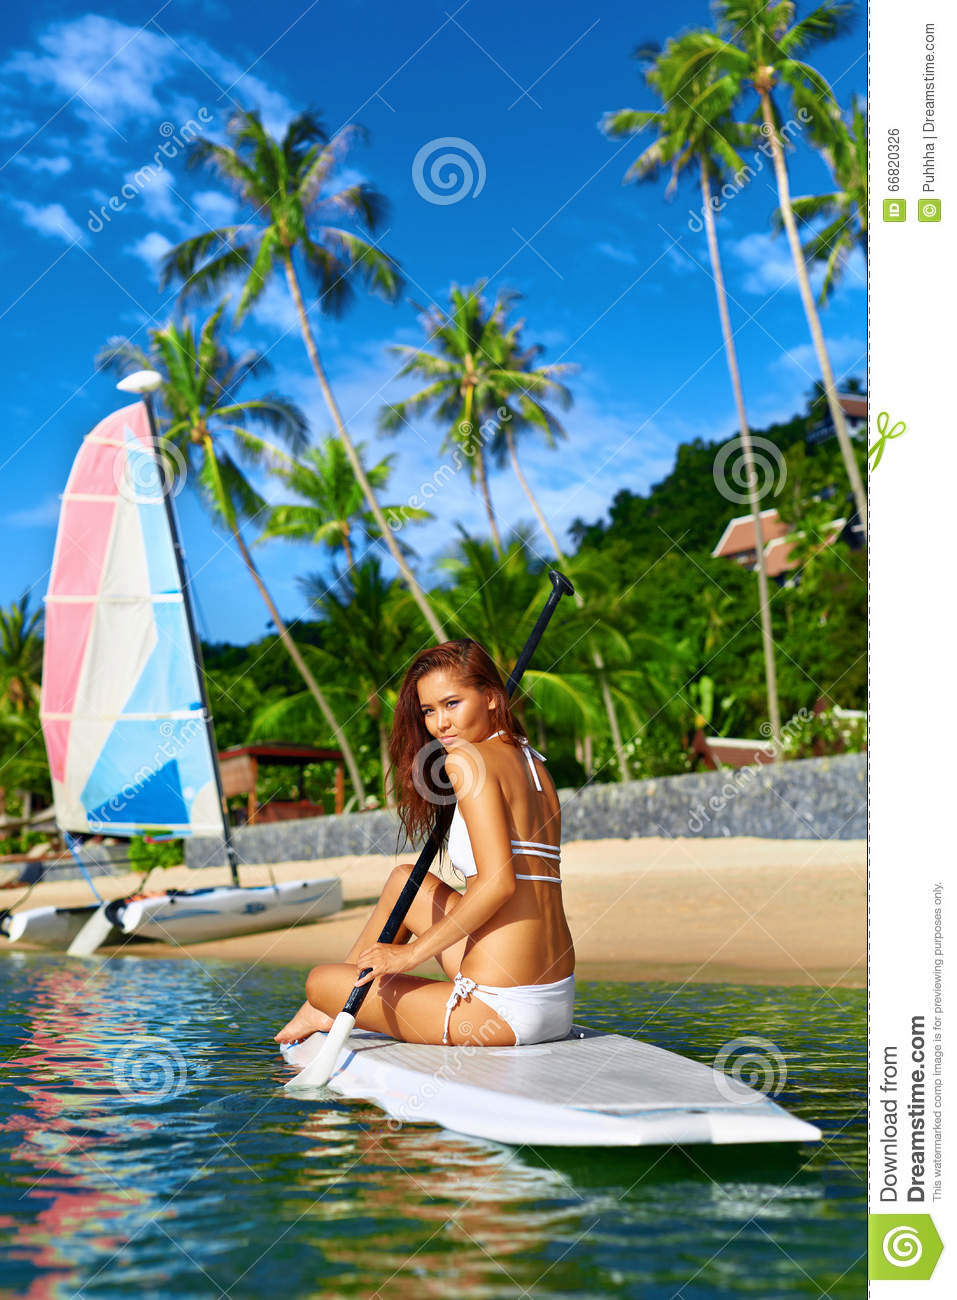 Travel Adventure Woman Paddling On Surfing Board Stock